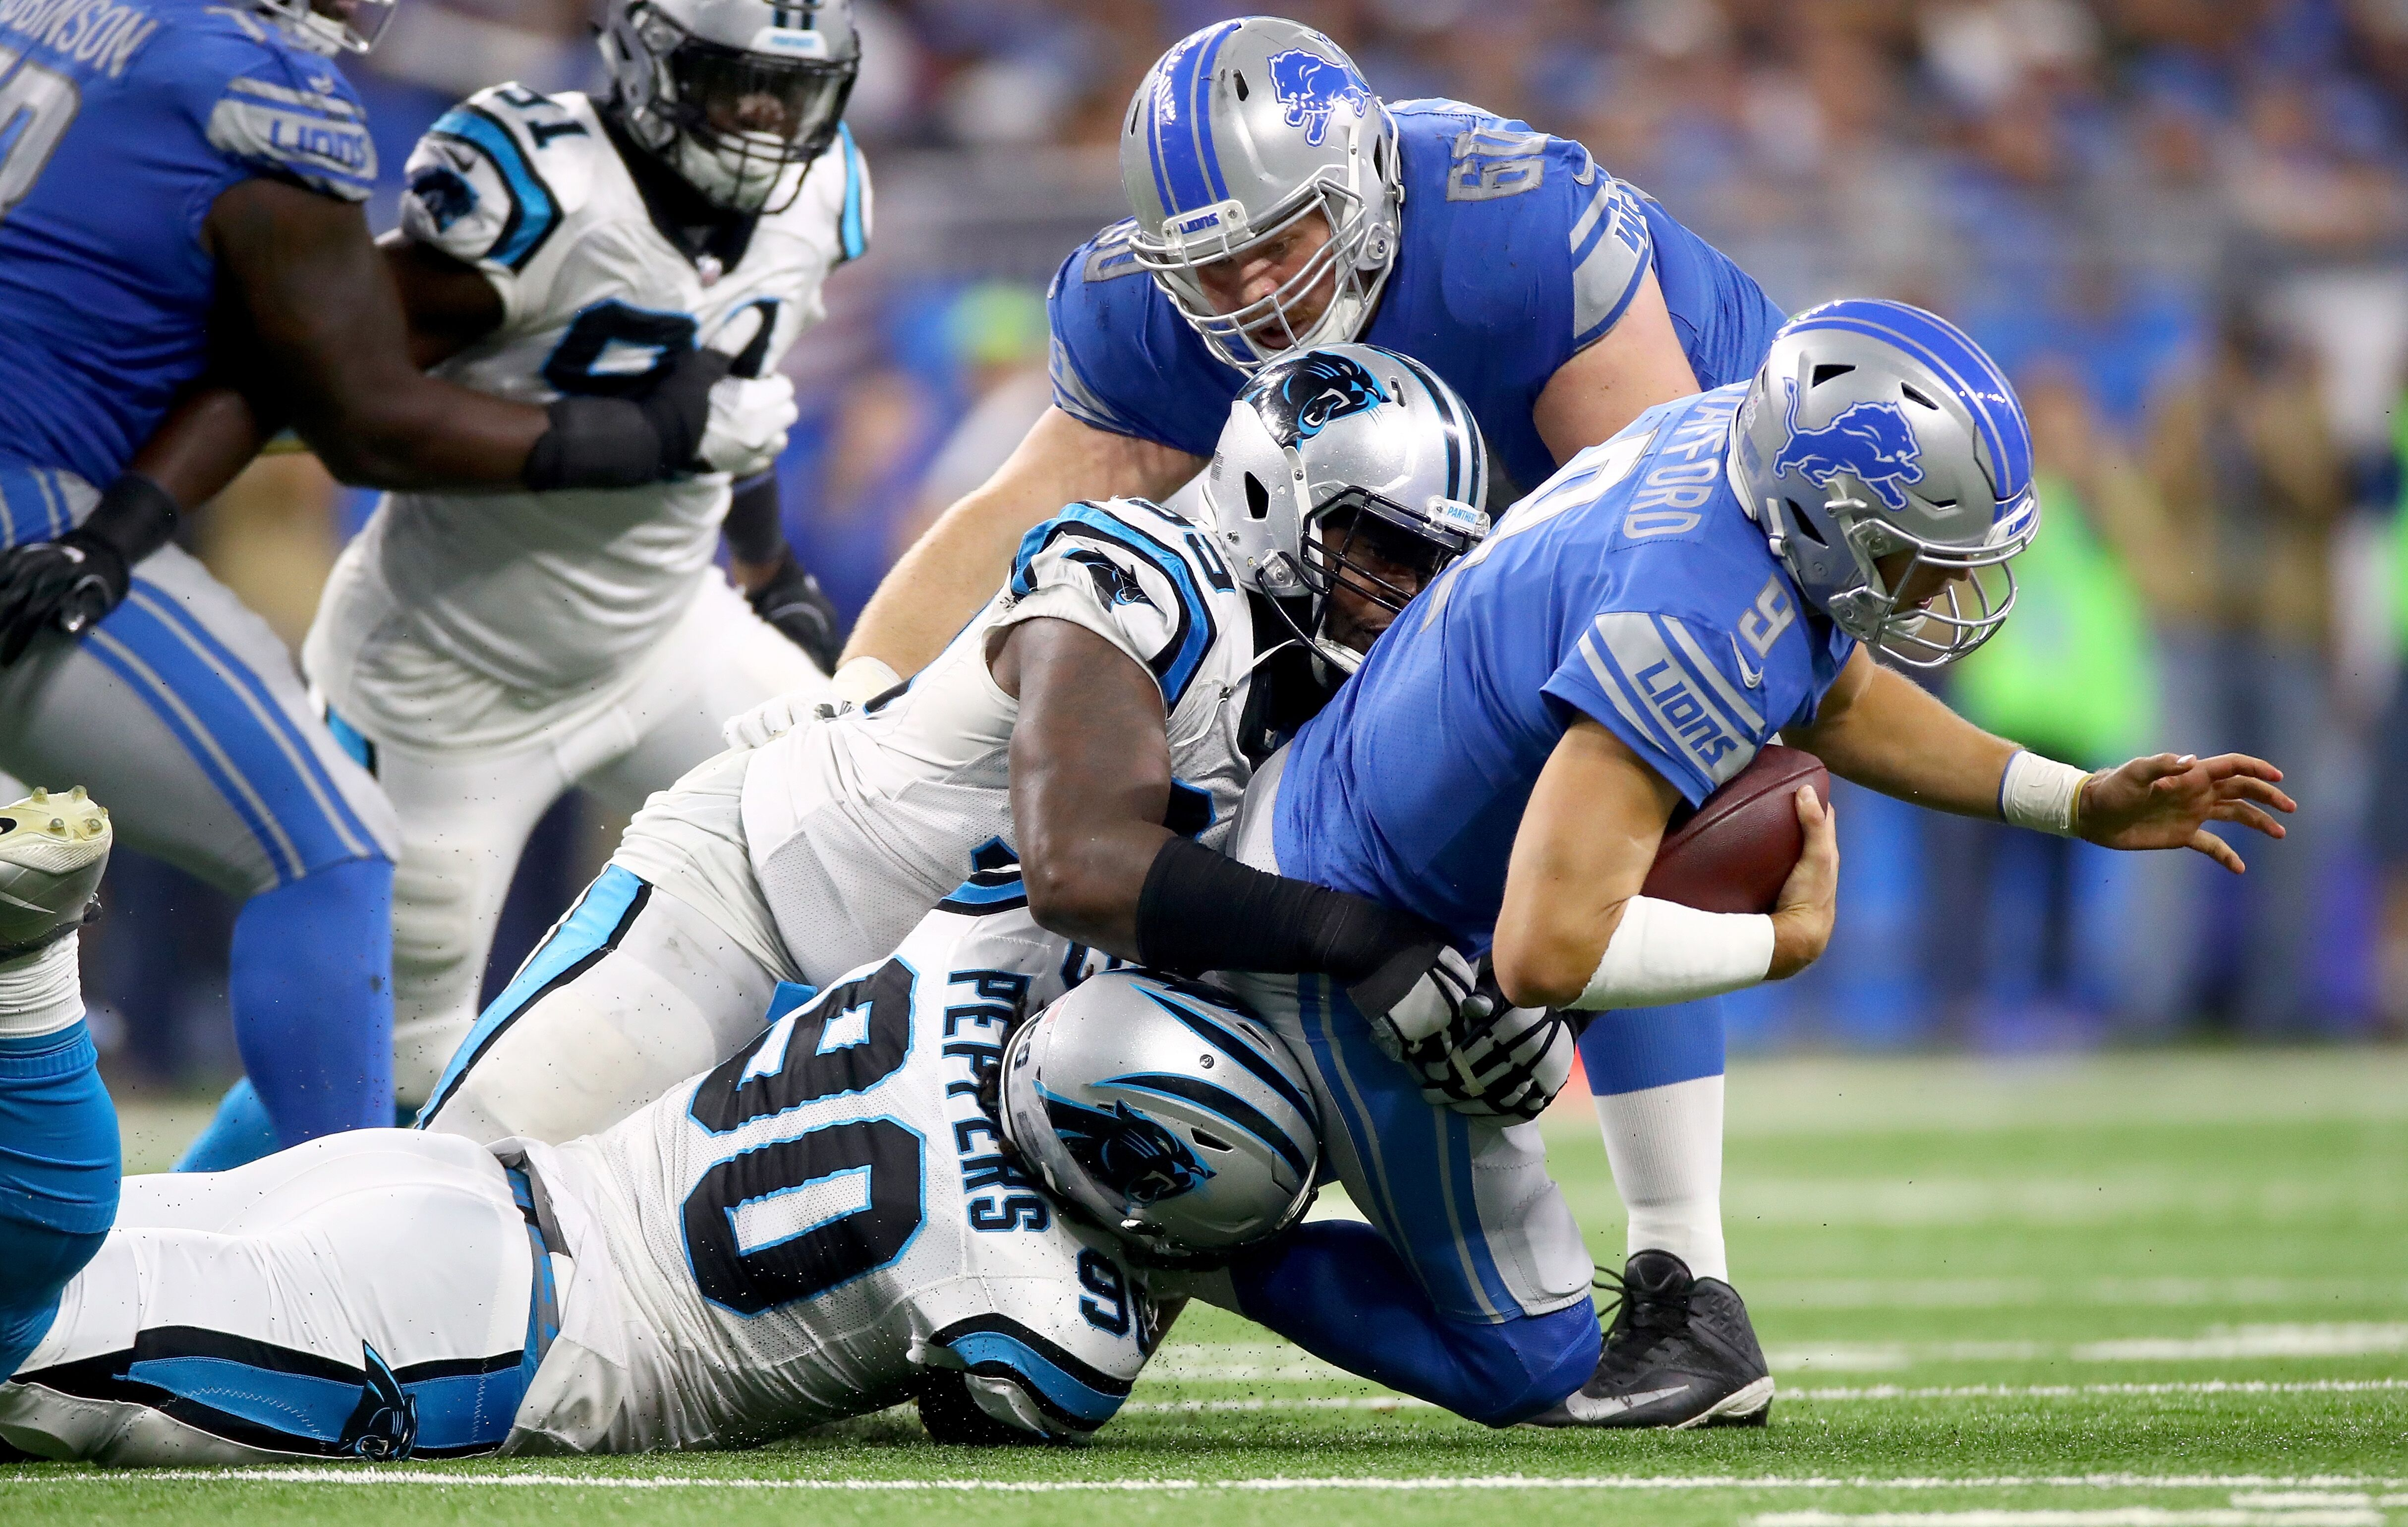 20fc5a000 Carolina Panthers: Early offseason moves reveal NFL Draft focus